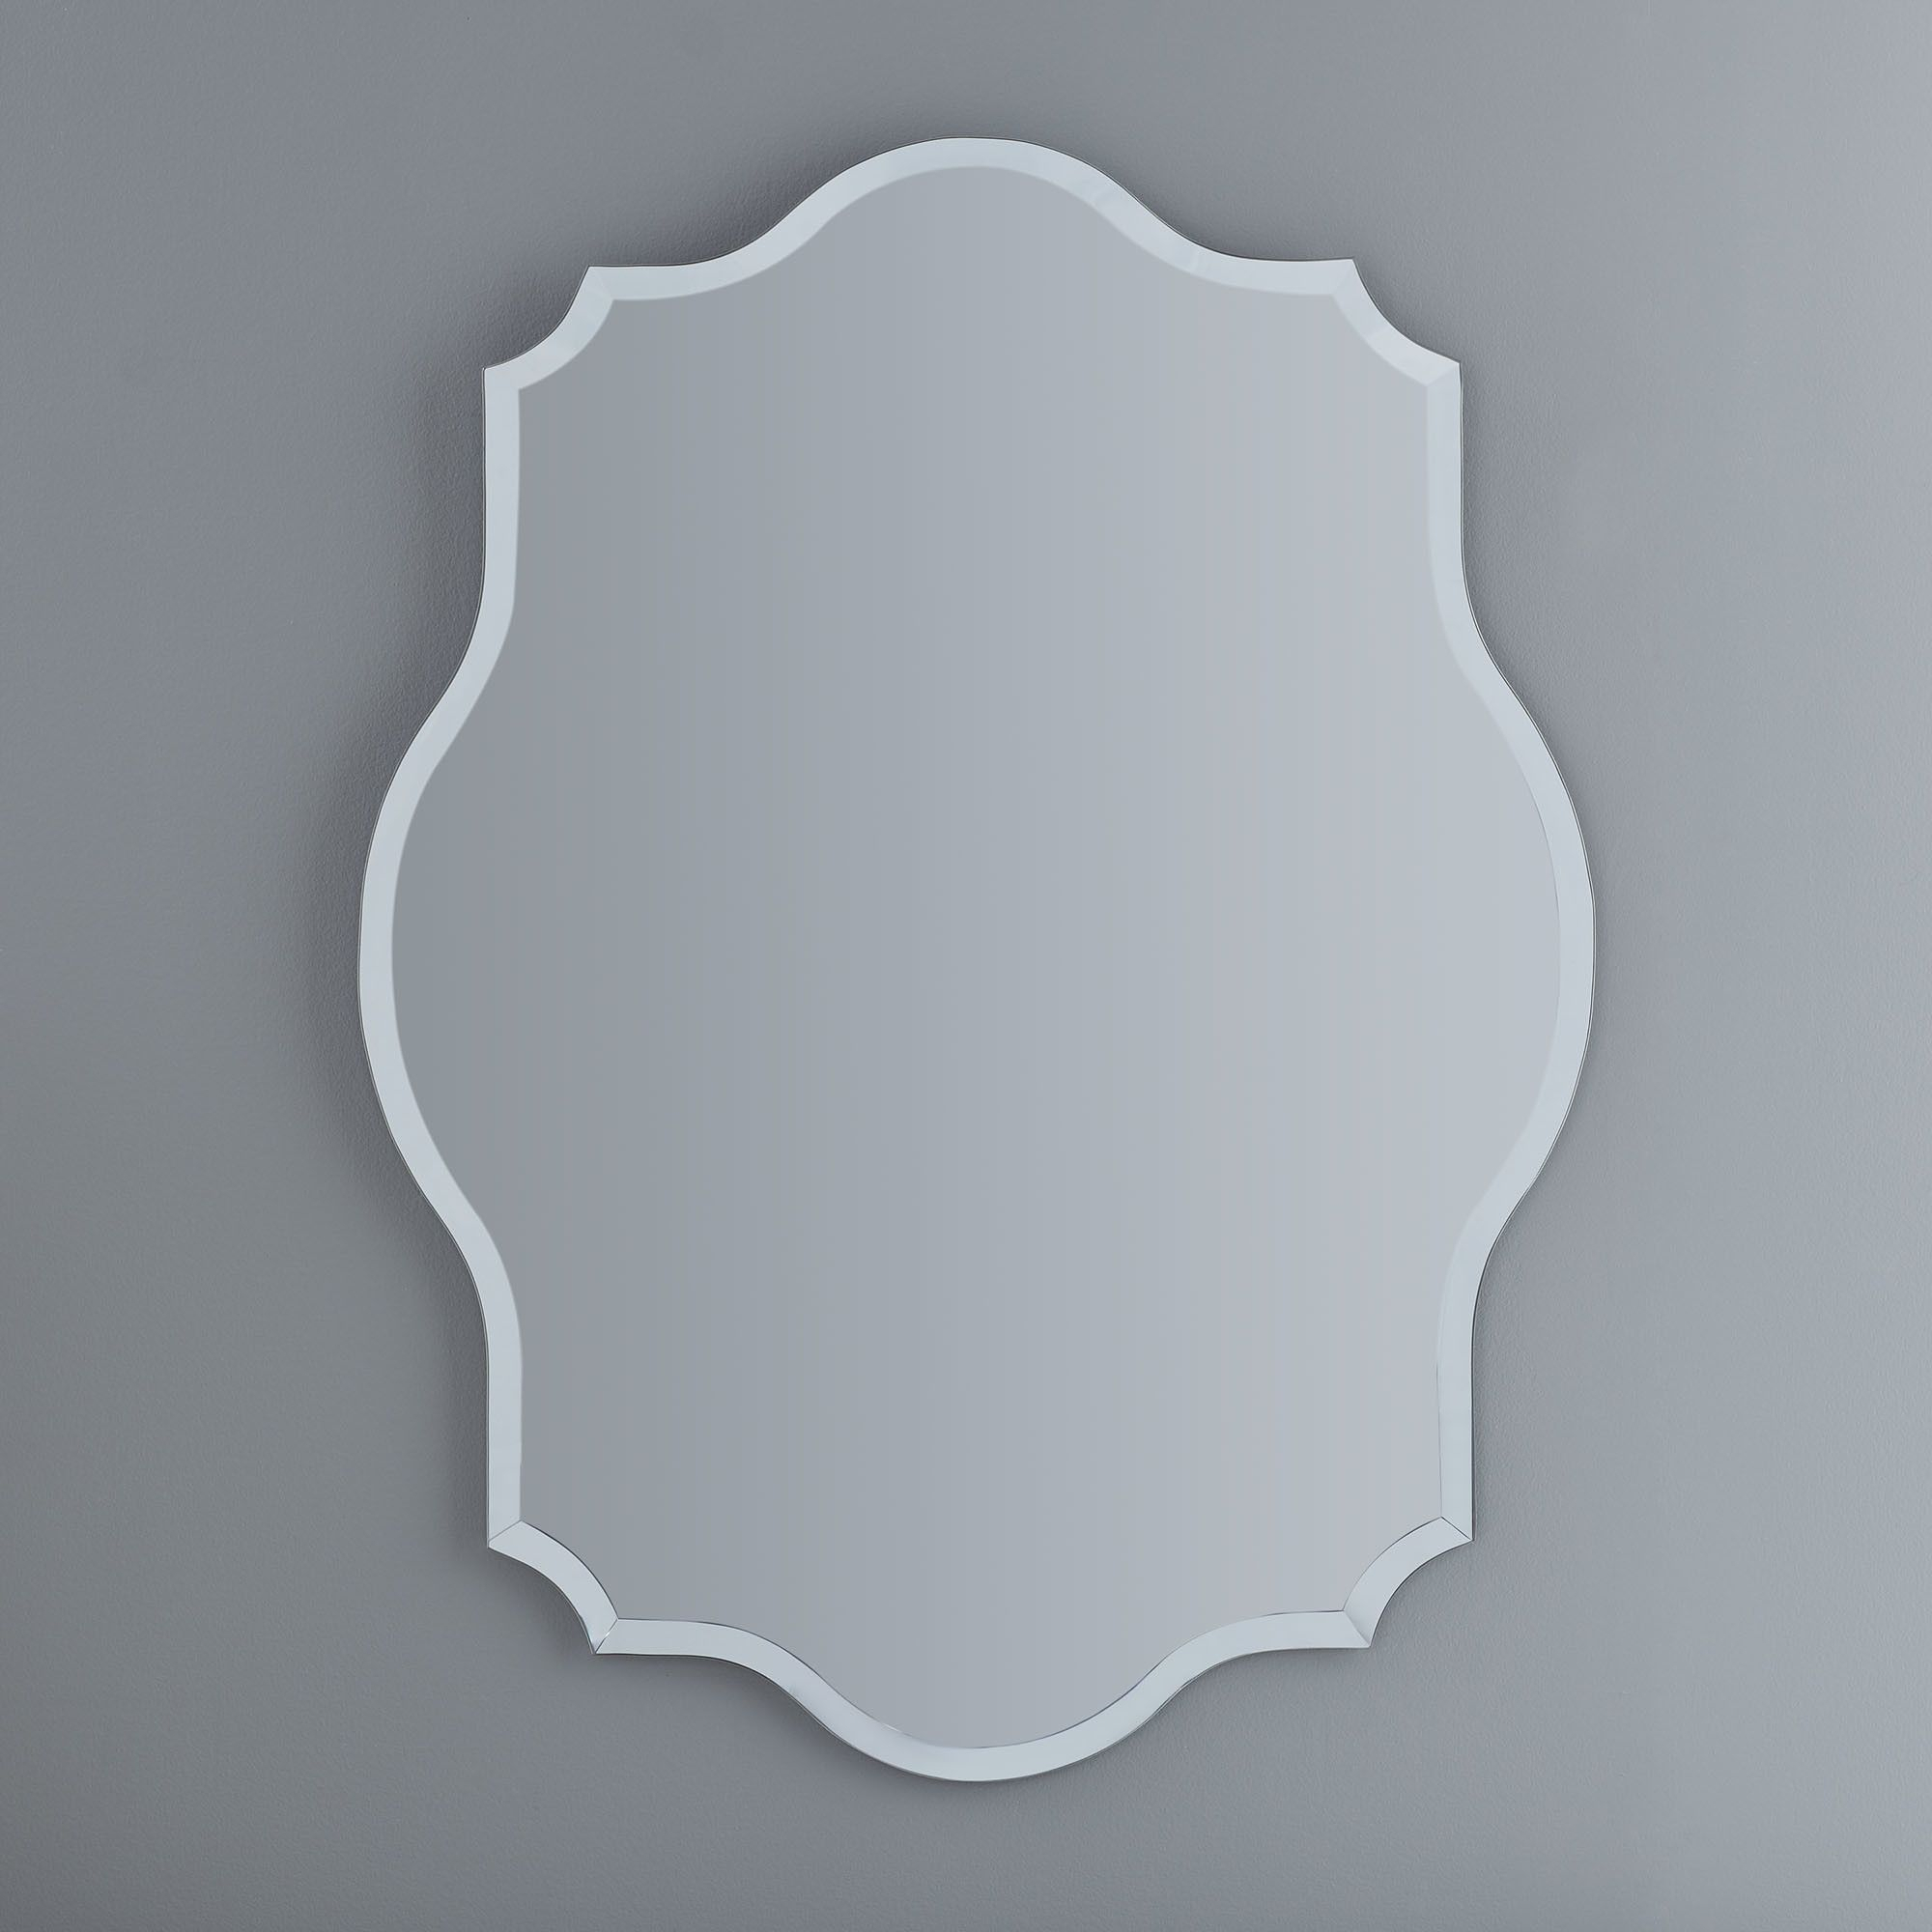 Guidinha Modern & Contemporary Accent Mirror | Products Pertaining To Guidinha Modern & Contemporary Accent Mirrors (View 9 of 30)